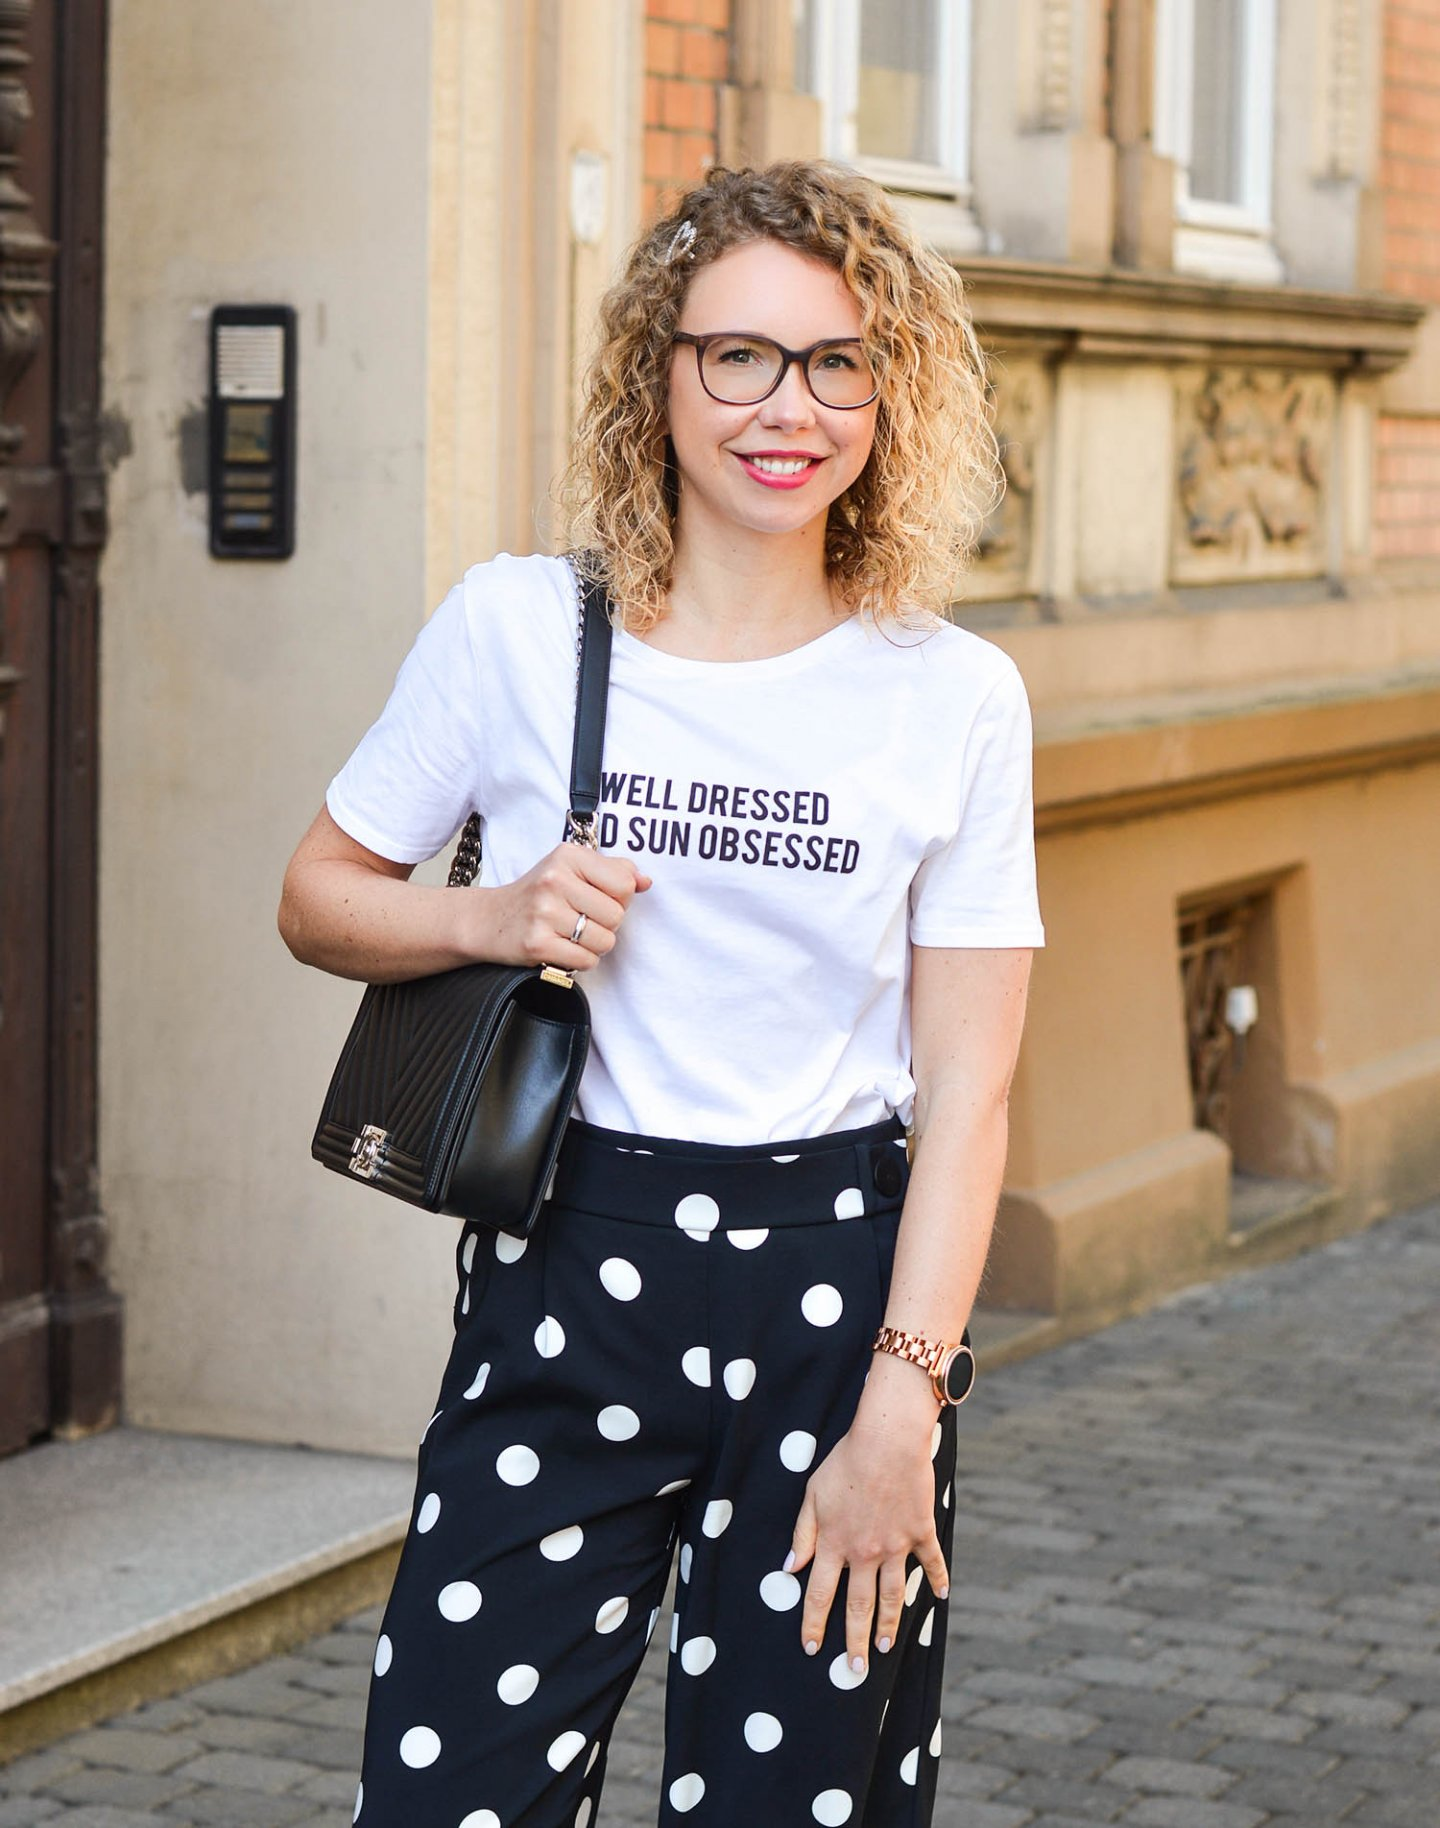 statement shirt und polka dots